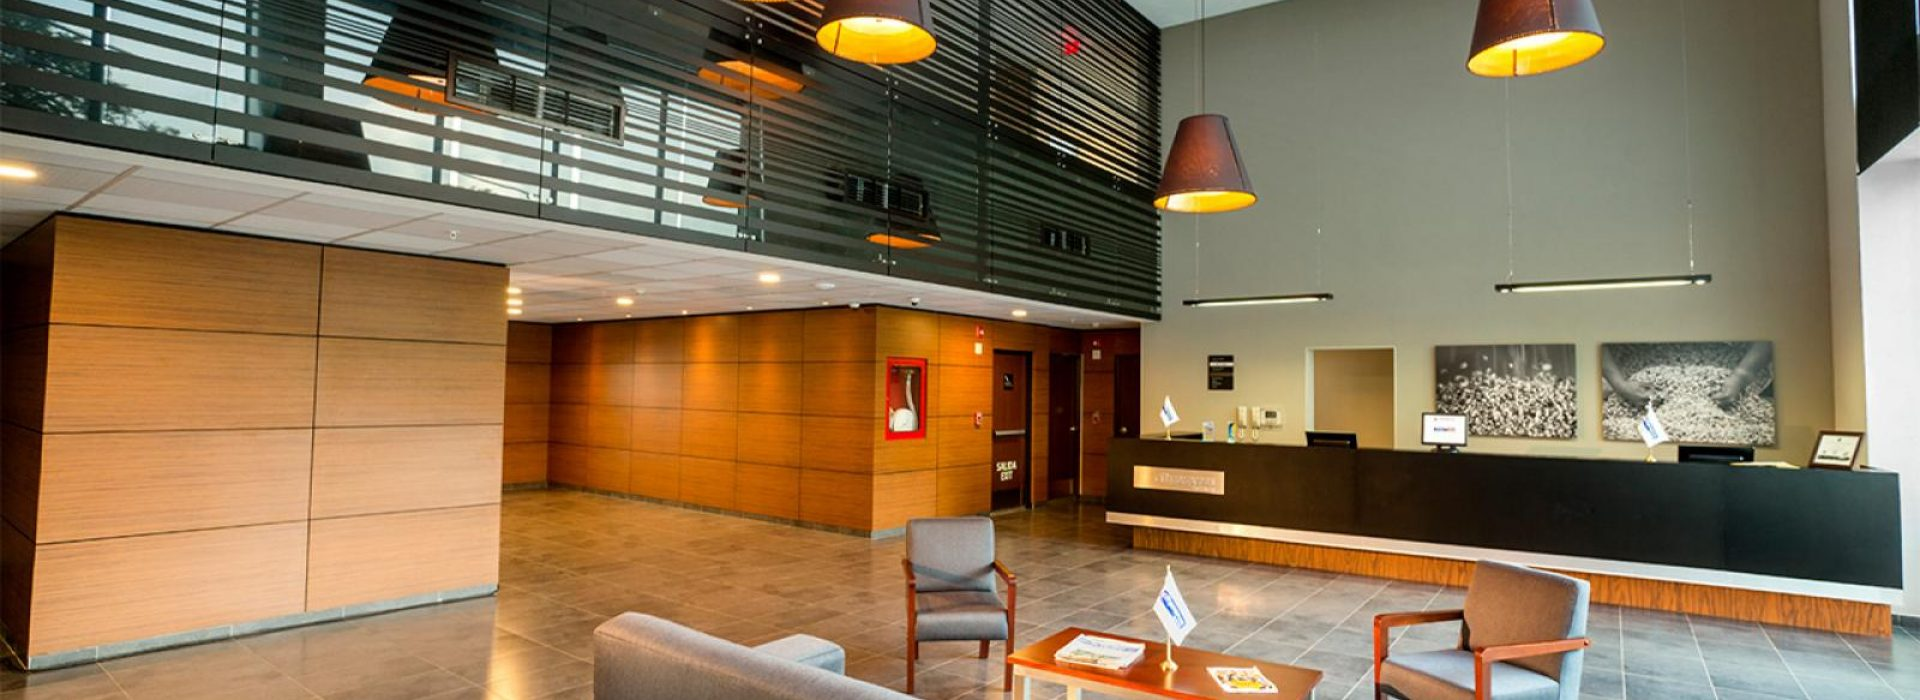 hotel-cali-colombia-city-express-plus-recepcion-lobby